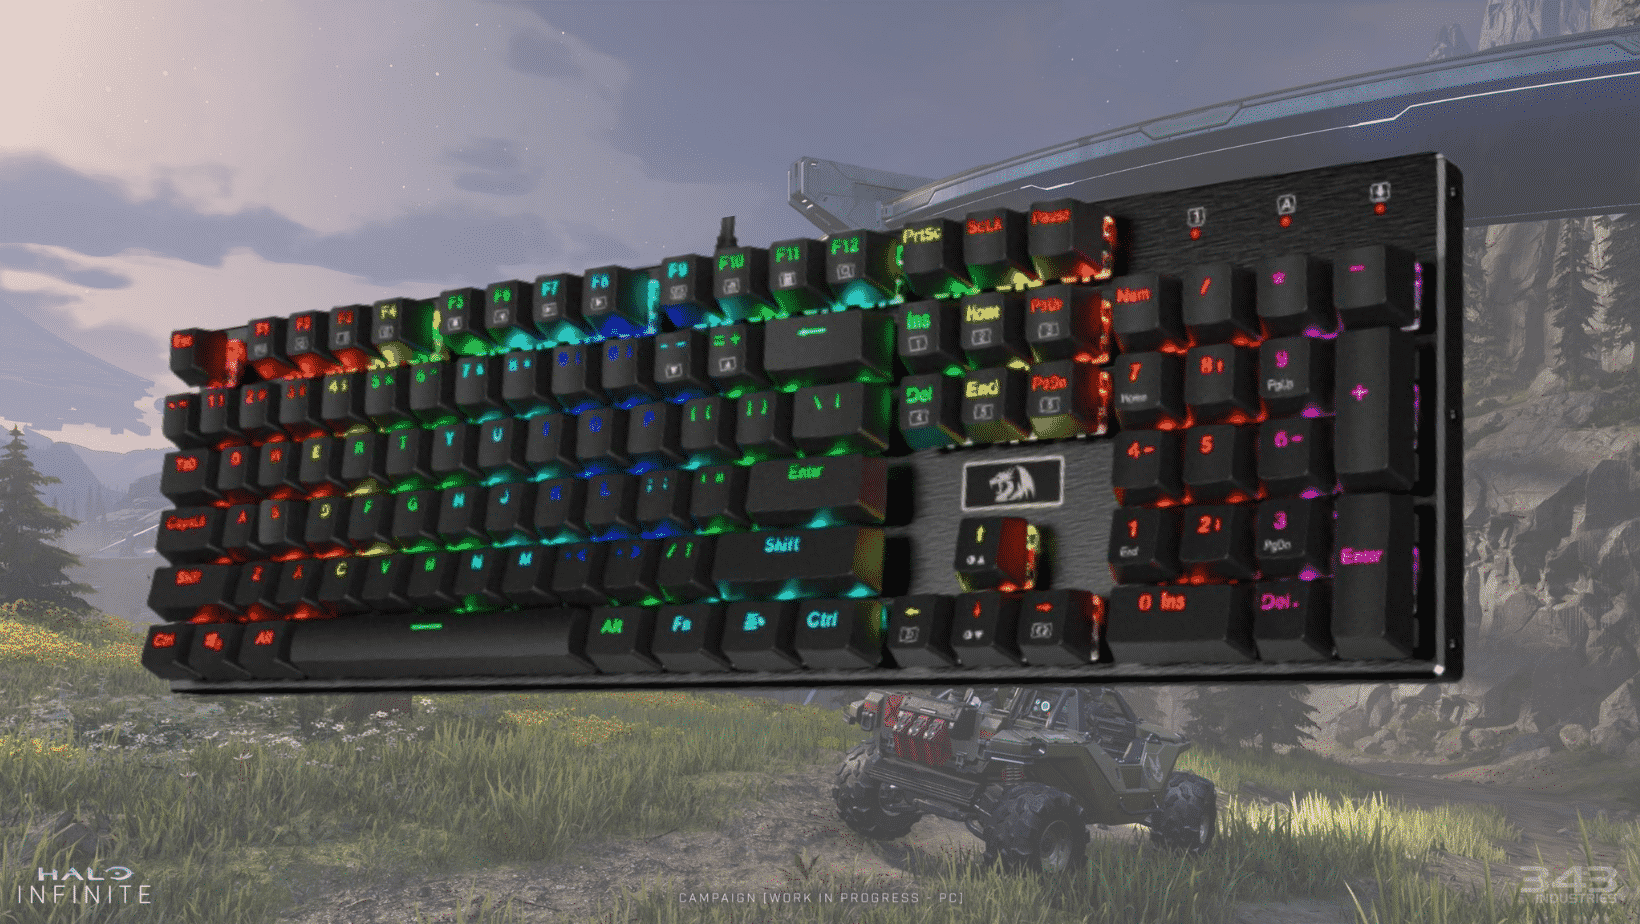 Top 5 Must Have Gaming Keyboard For Every Pro Gamer